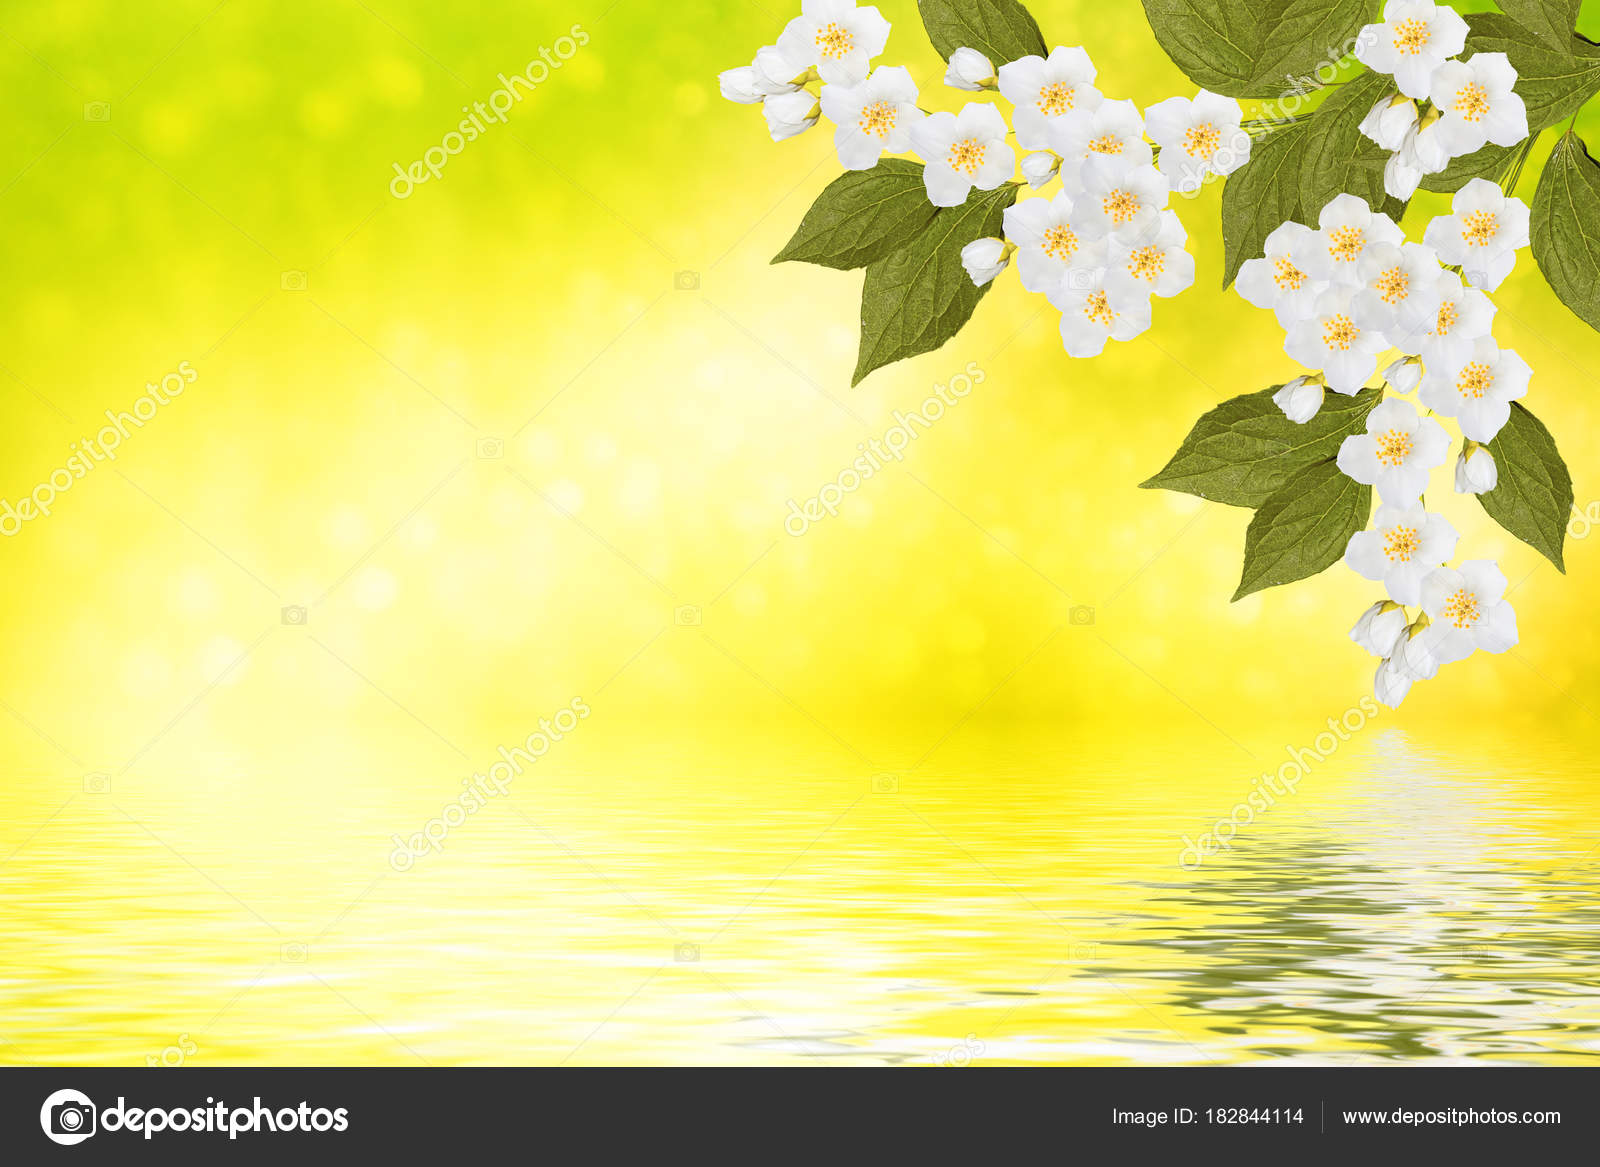 Spring landscape with delicate jasmine flowers stock photo spring landscape with delicate jasmine flowers stock photo izmirmasajfo